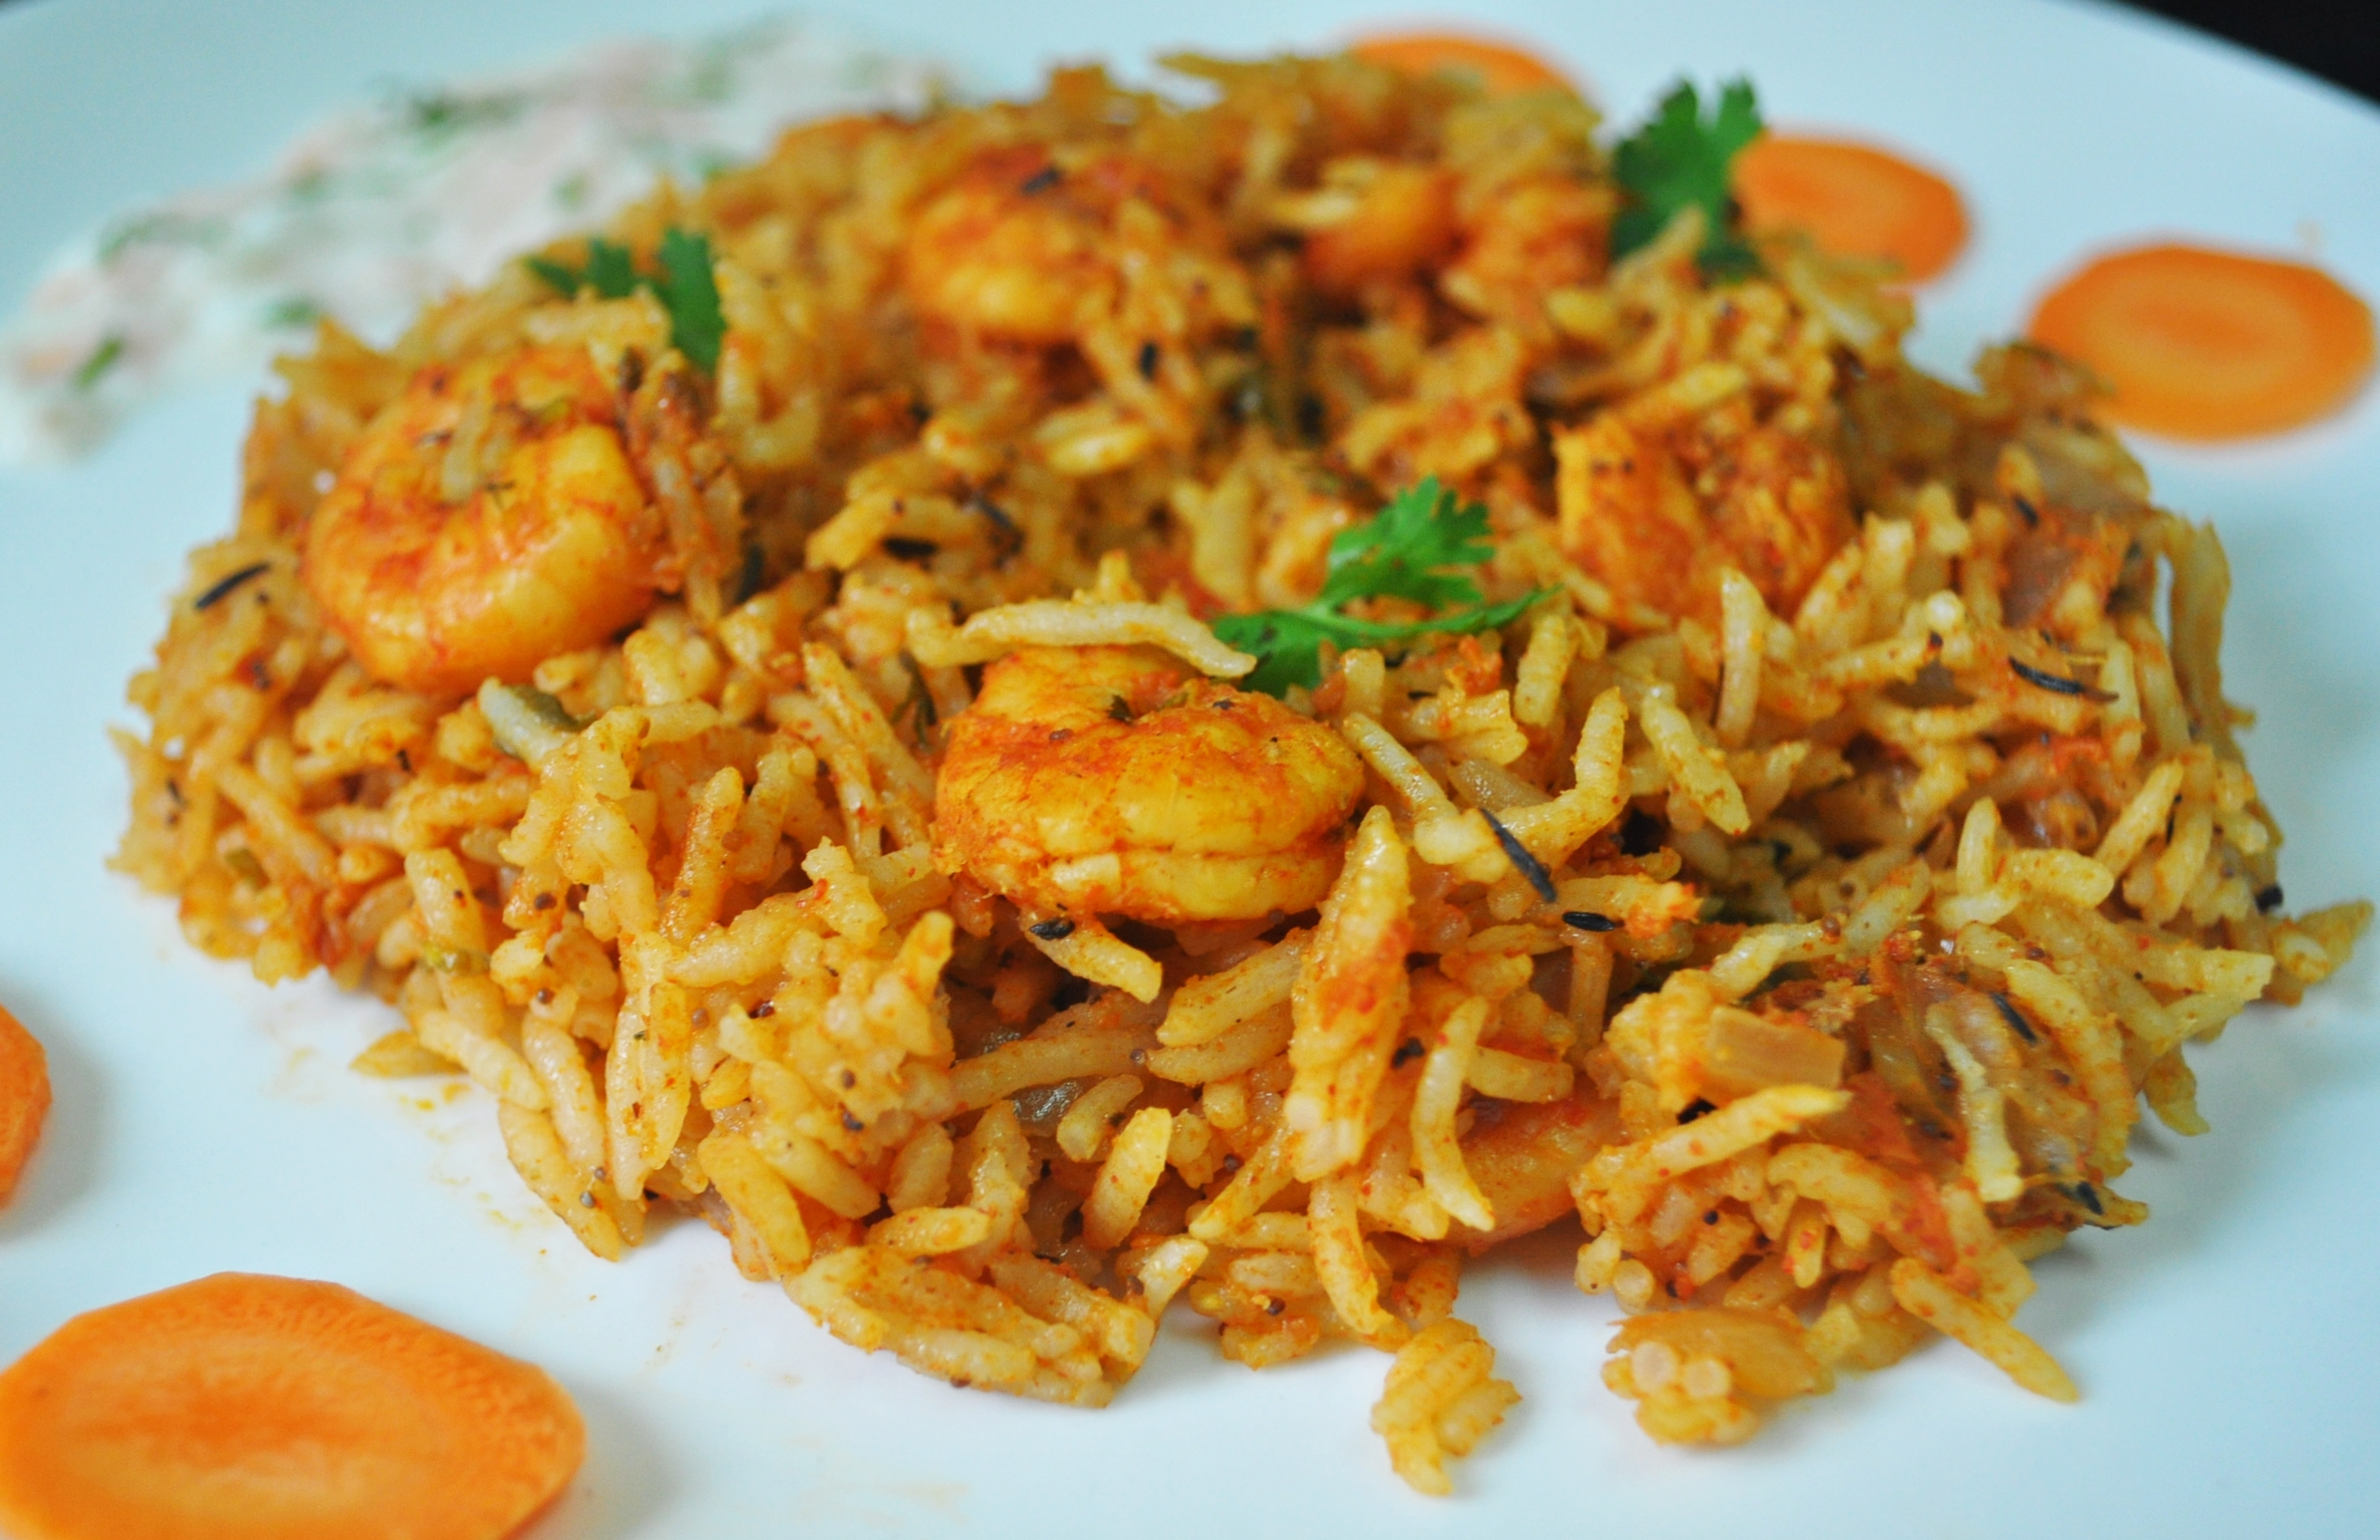 ... Shrimp Biryani Biryani Recipe Images Rice Pics Chicken Recipe In Urdu